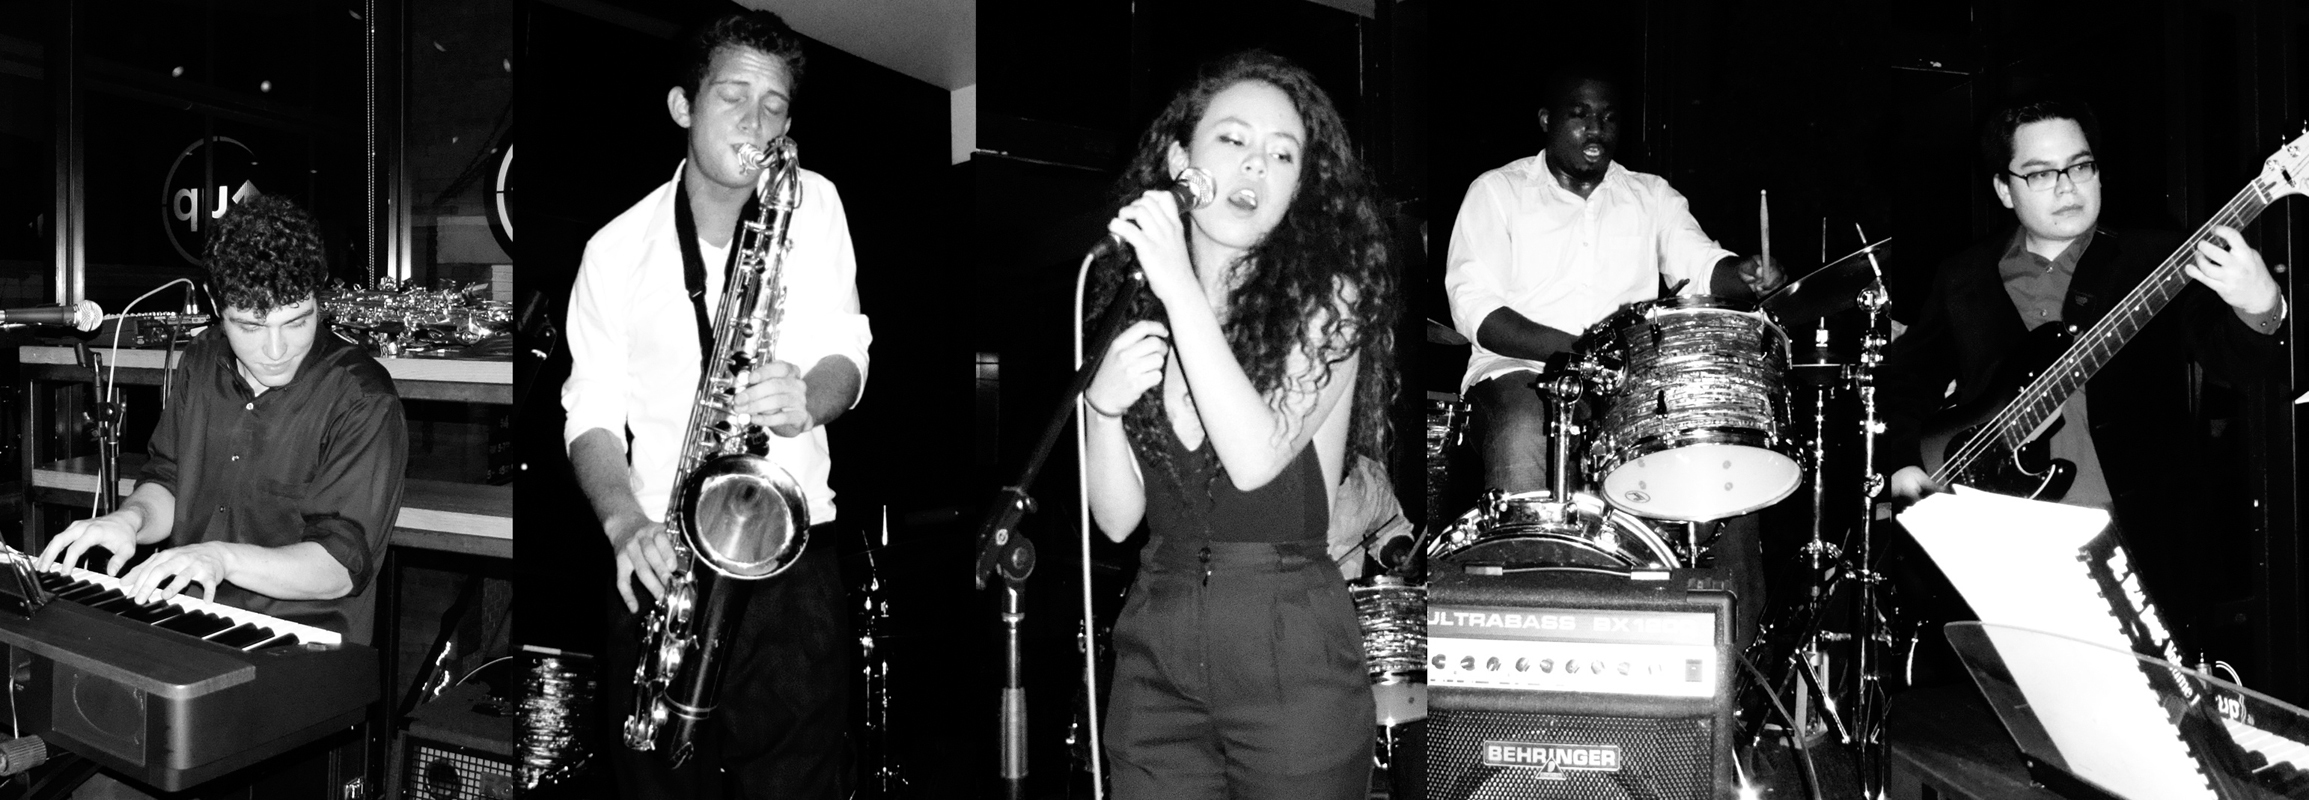 The Mariko Reid Quintet, comprised of Carnegie Mellon students across multiple disciplines, combines an array of genres including jazz and hip-hop in energetic and crowd-pleasing performances. (credit: Photo illustration courtesy of Daniel KilKelly via the Mariko Reid Quintet)